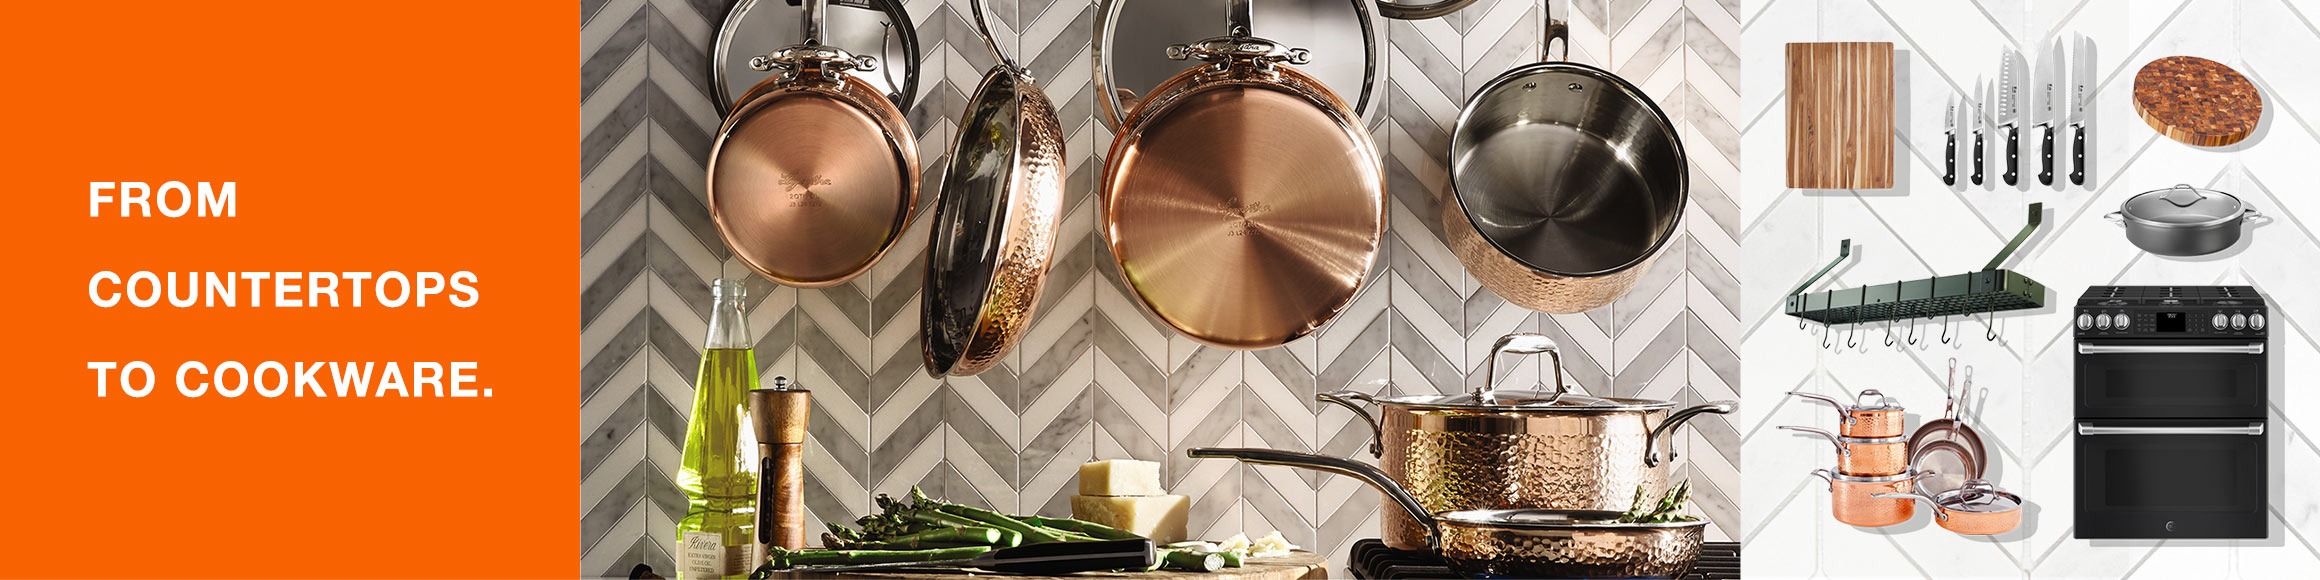 From Countertops to Cookware.